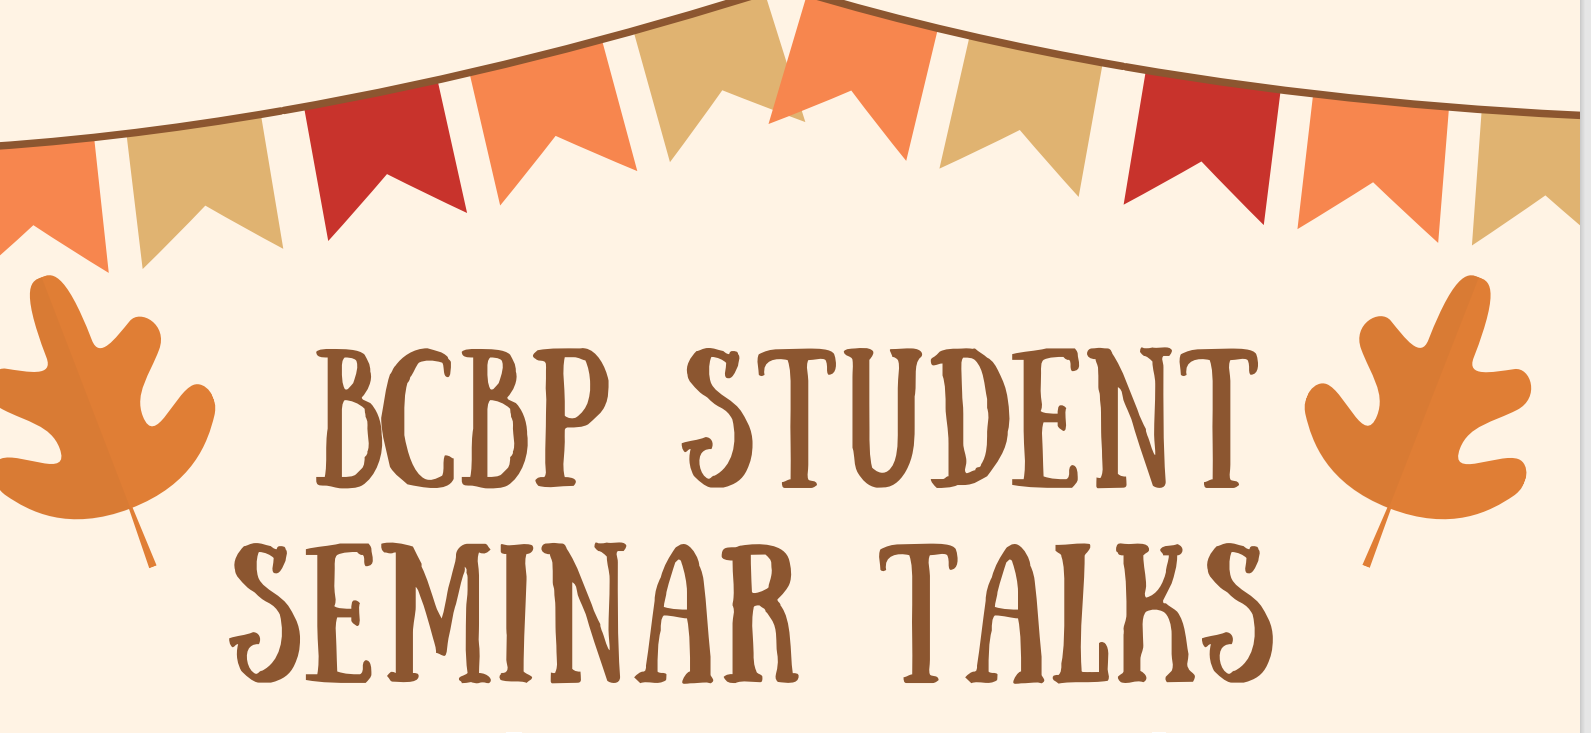 """text """"BCBP student seminar talks"""" image of fall leaves and banner"""